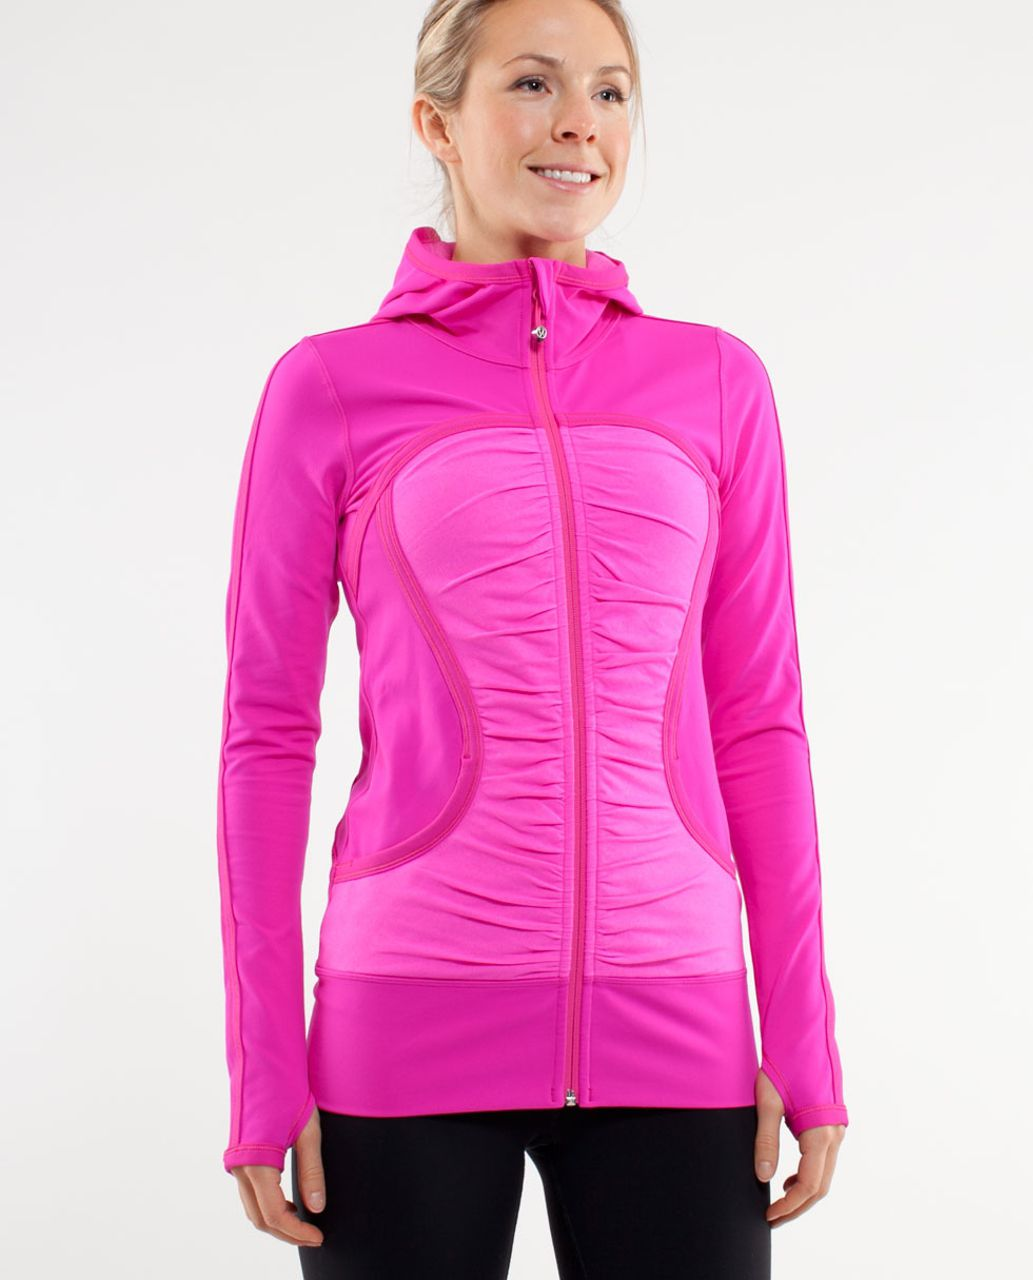 Lululemon Pure Balance Jacket - Paris Pink